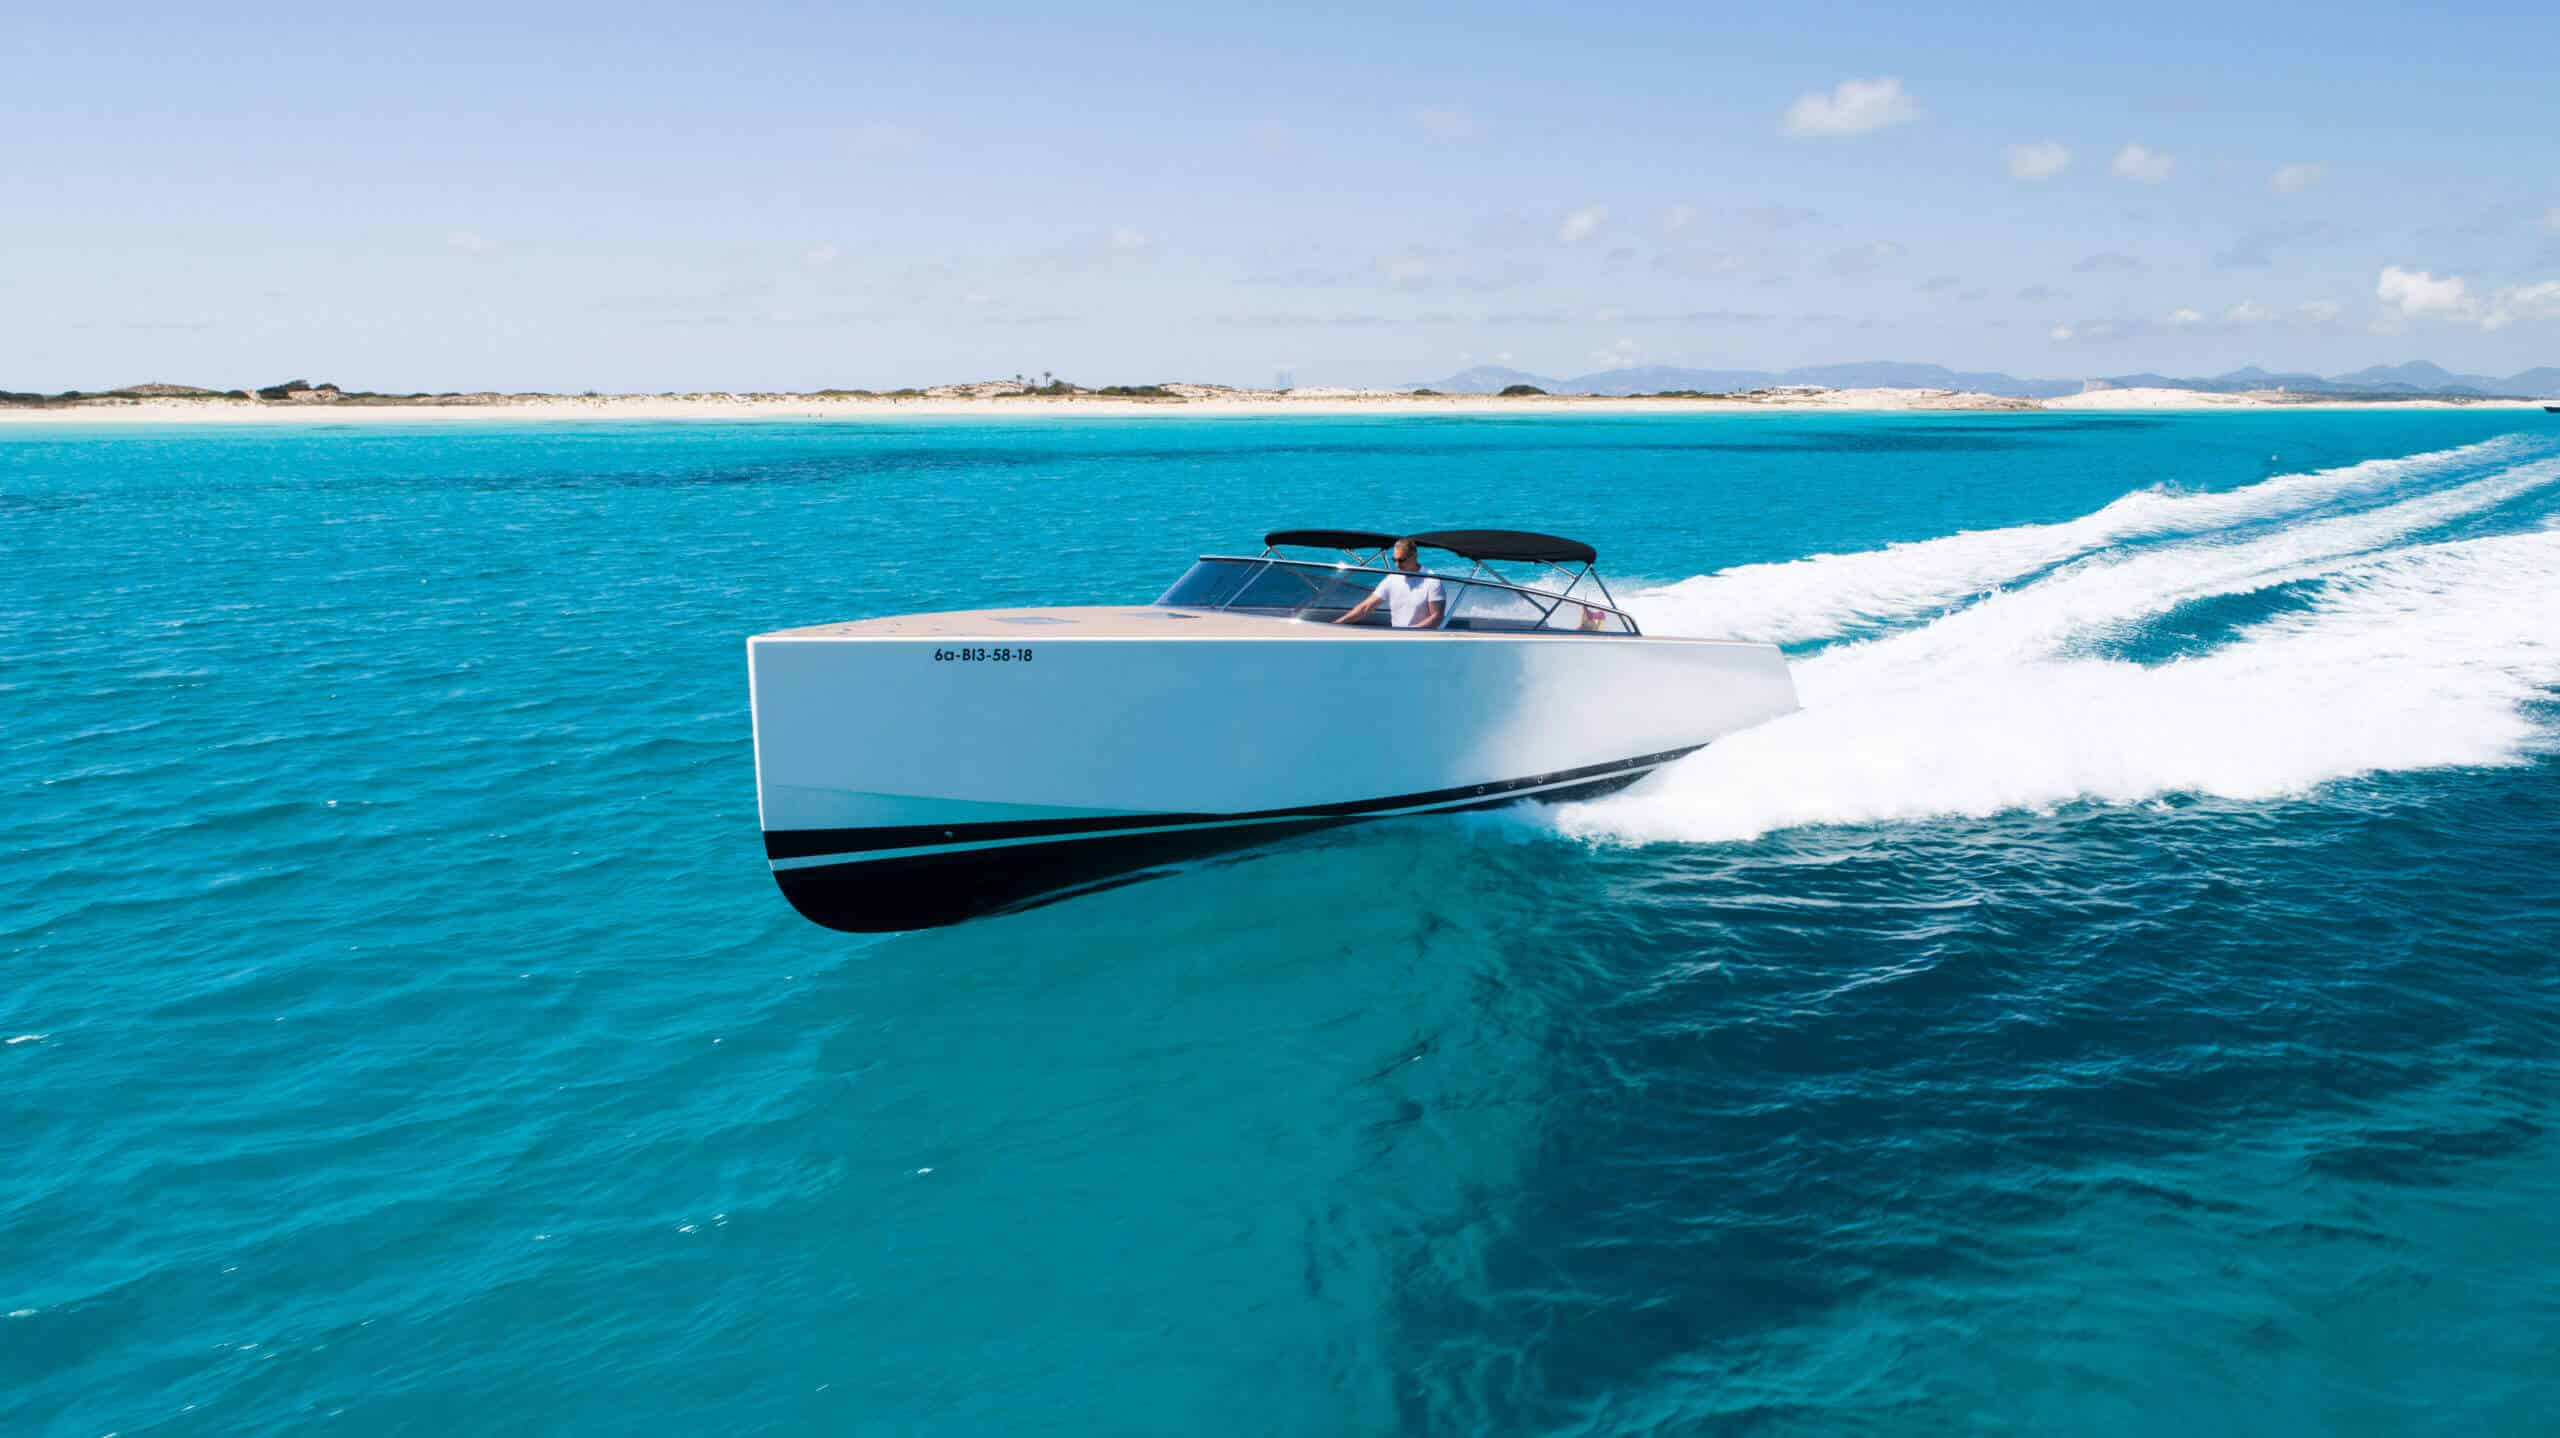 Private Boat Party? Get Hire or Book Luxury Yacht for Party Ibiza! Ibiza VIP Area